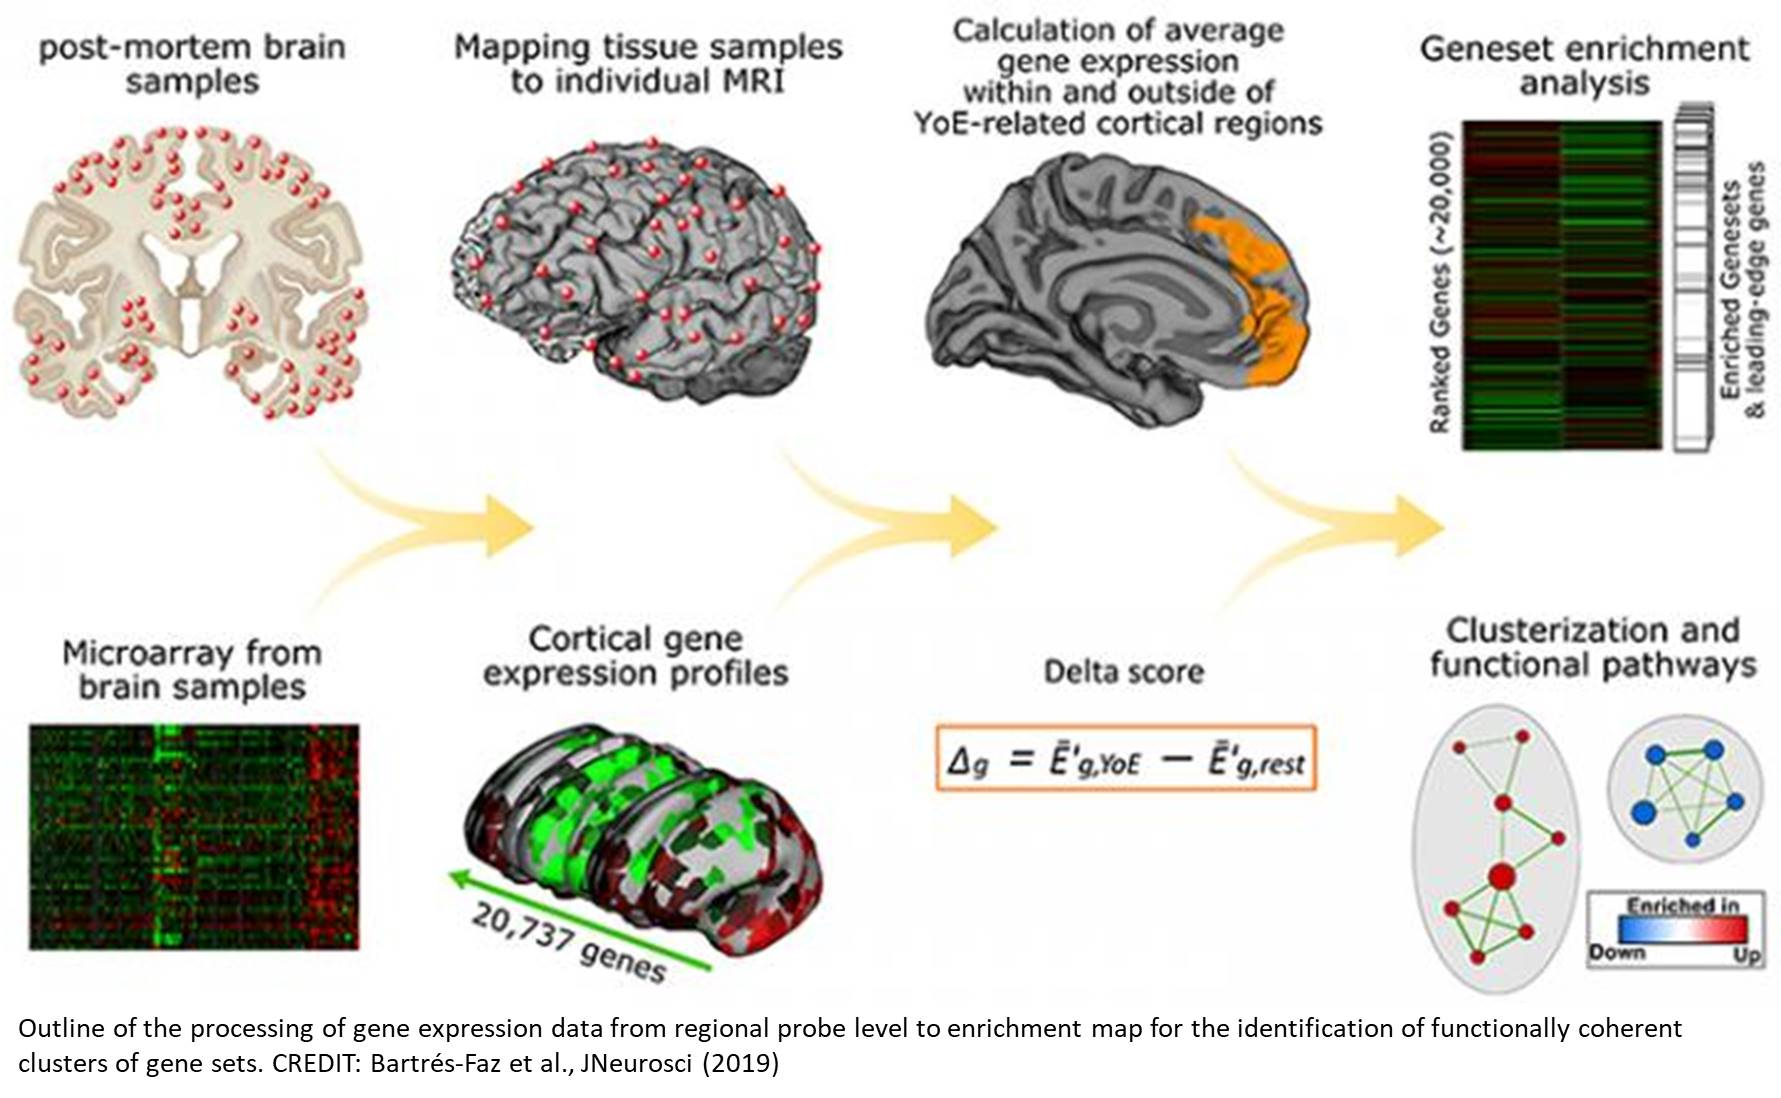 Genes and molecular pathways that keep the brain sharp in old age